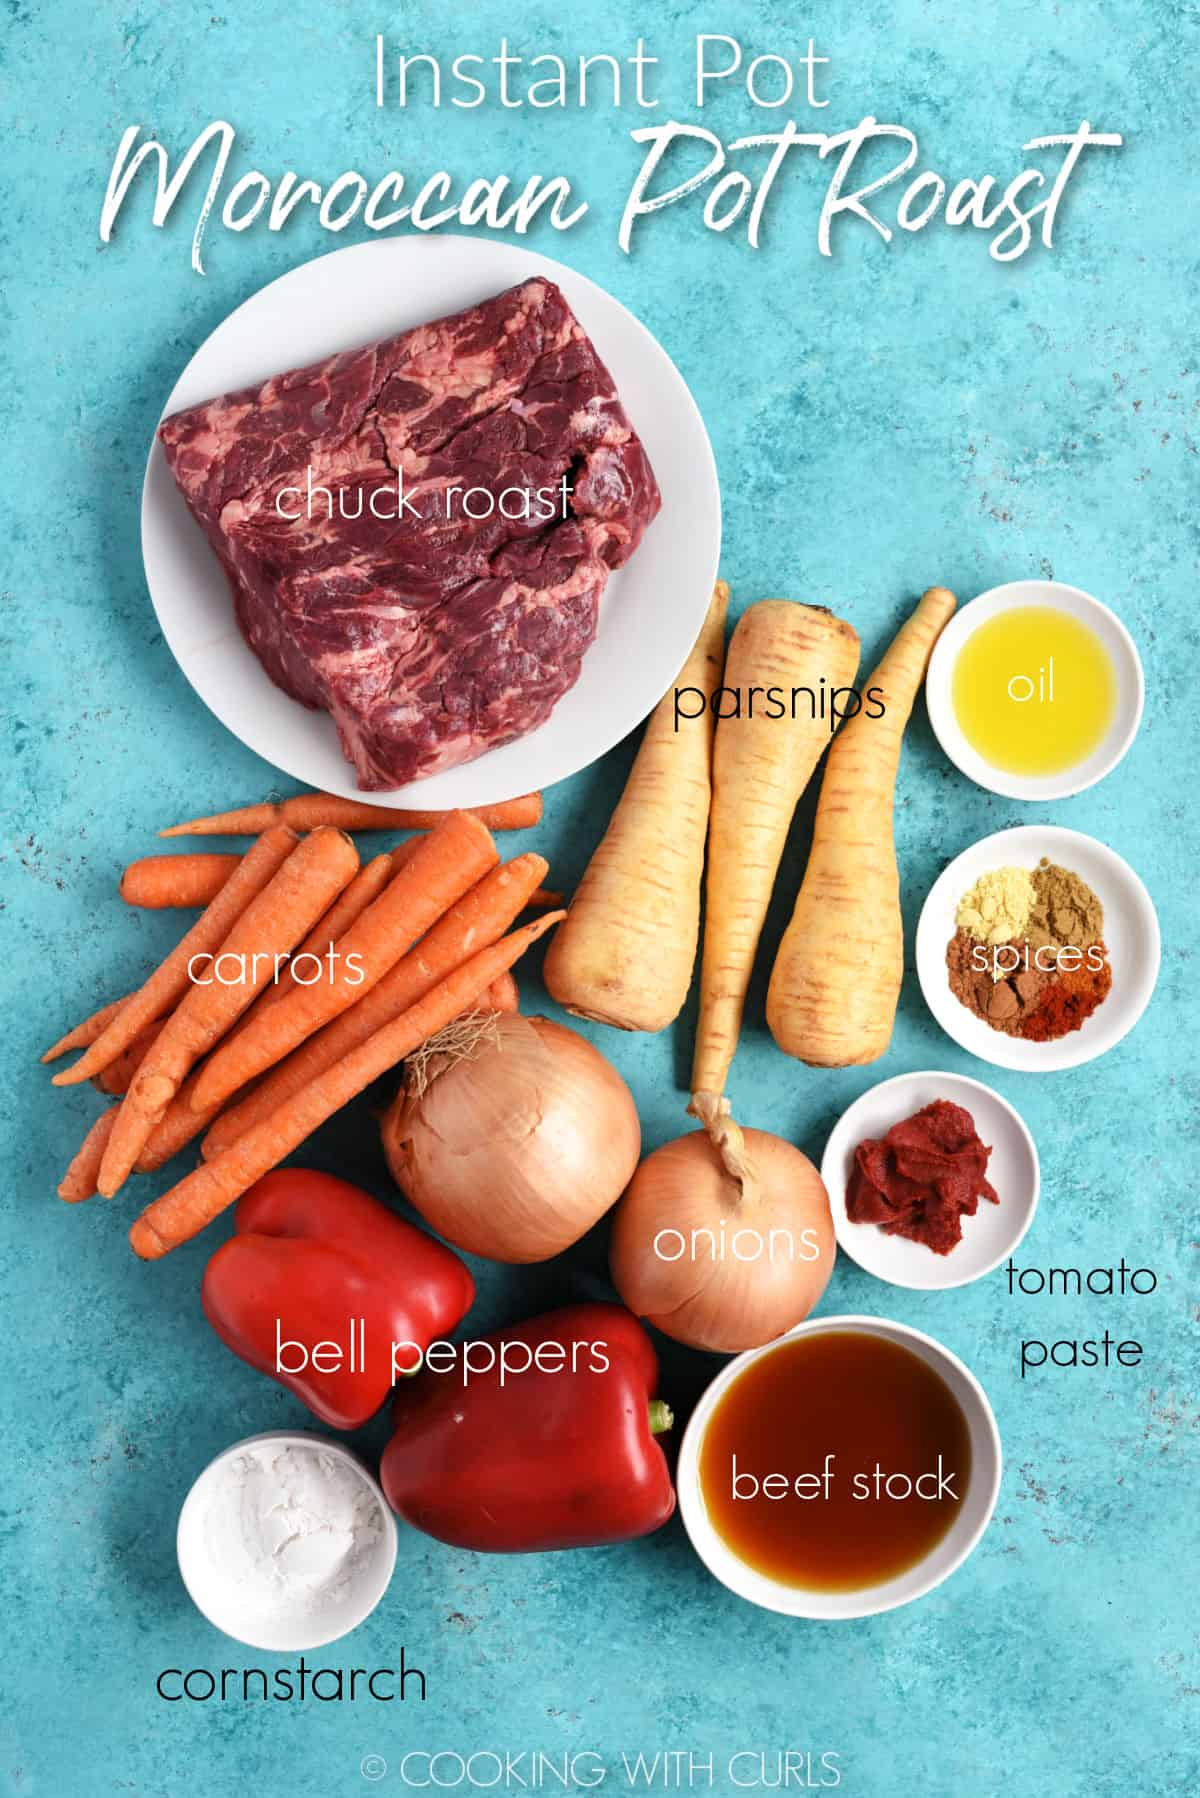 Chuck roast, oil, spices, three parsnips, a bunch of carrots, two onions, two bell peppers, tomato paste, beef stock and cornstarch on a turquoise background.